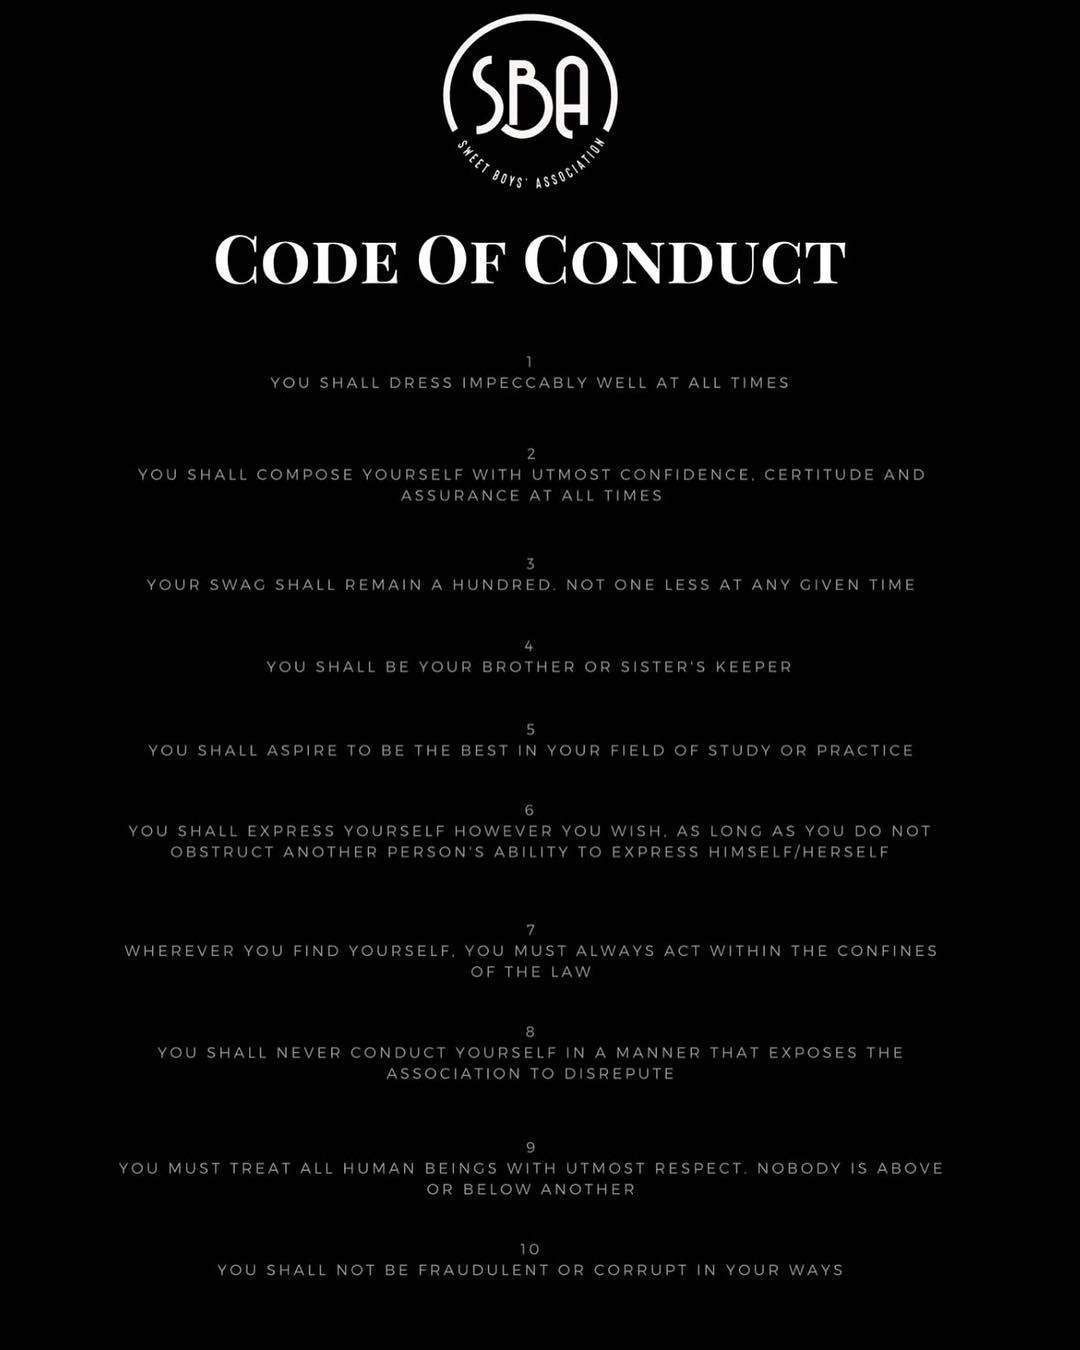 SBA_Code_Of_Conduct